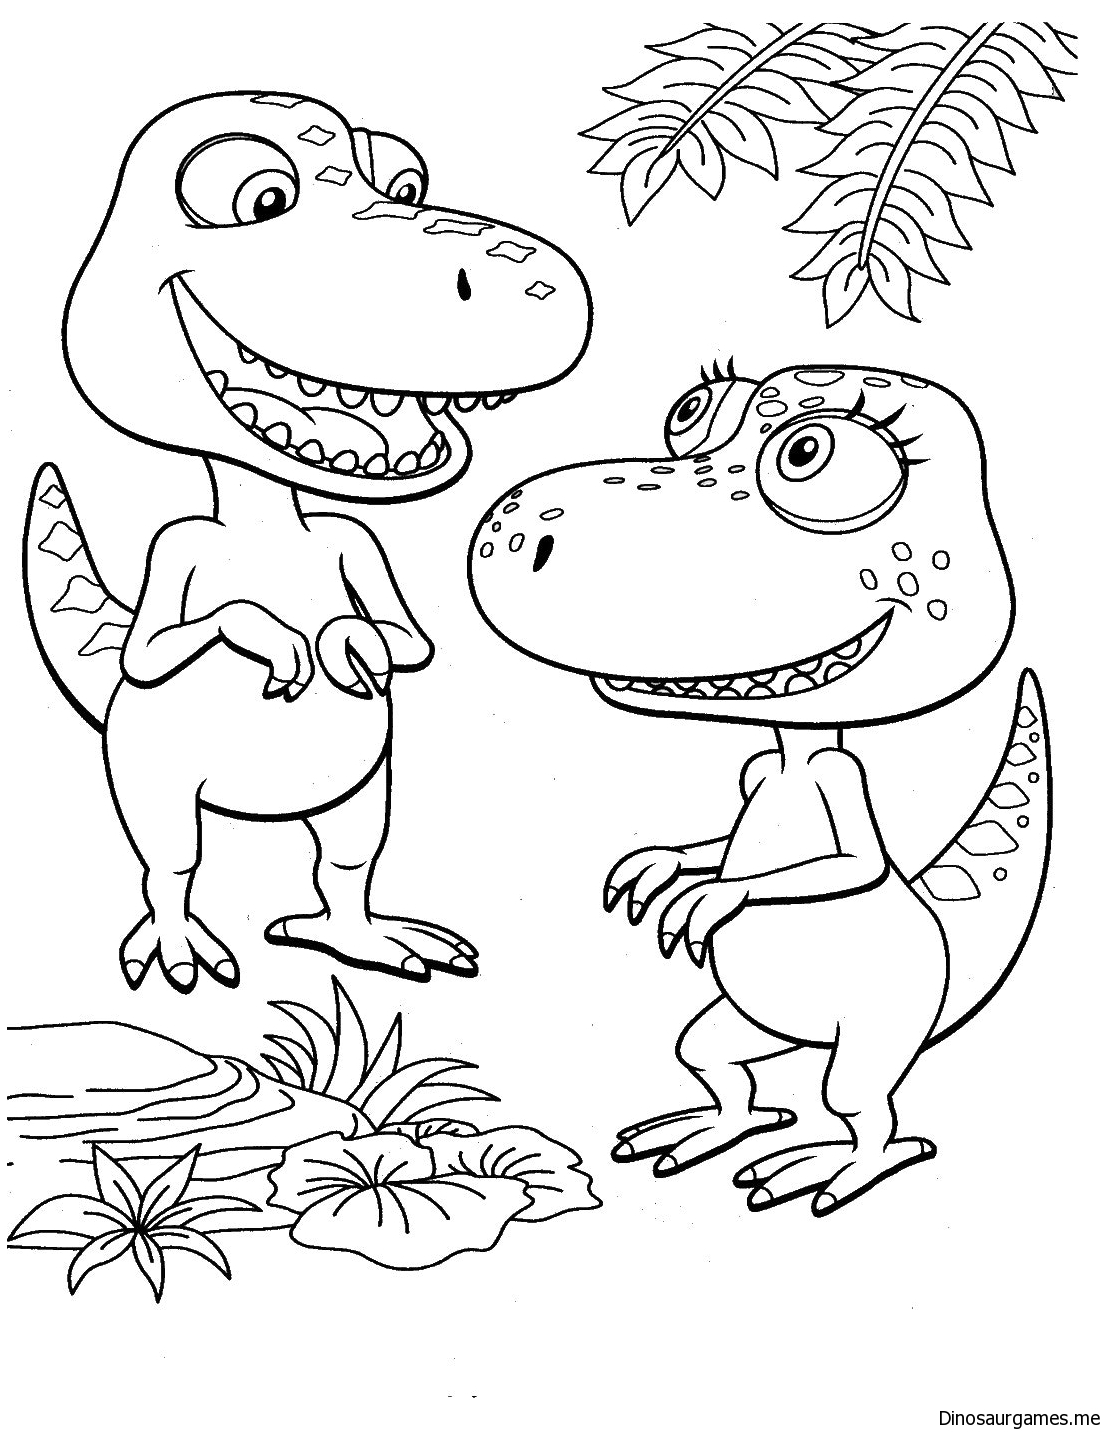 Dinosaur Train 6 Coloring Page